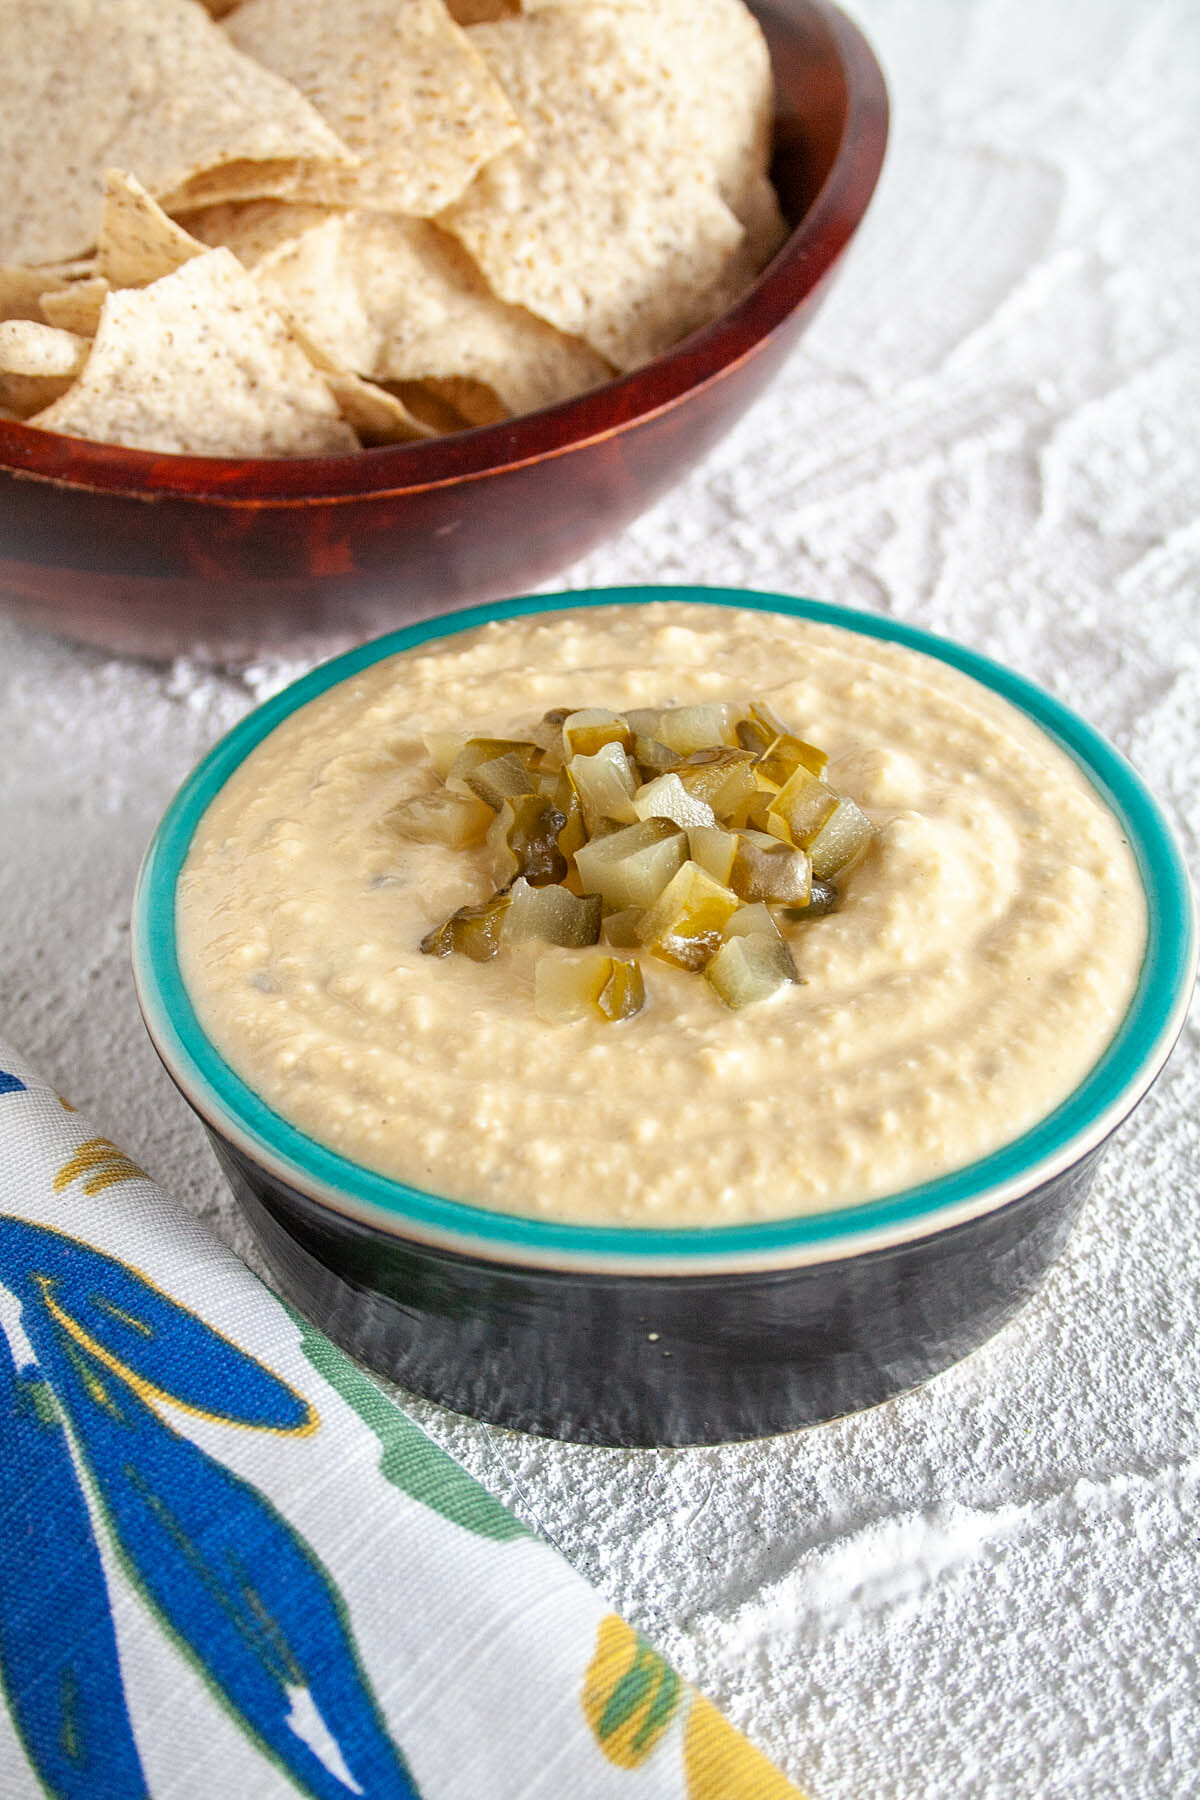 Dill Pickle Hummus with tortilla chips in background.